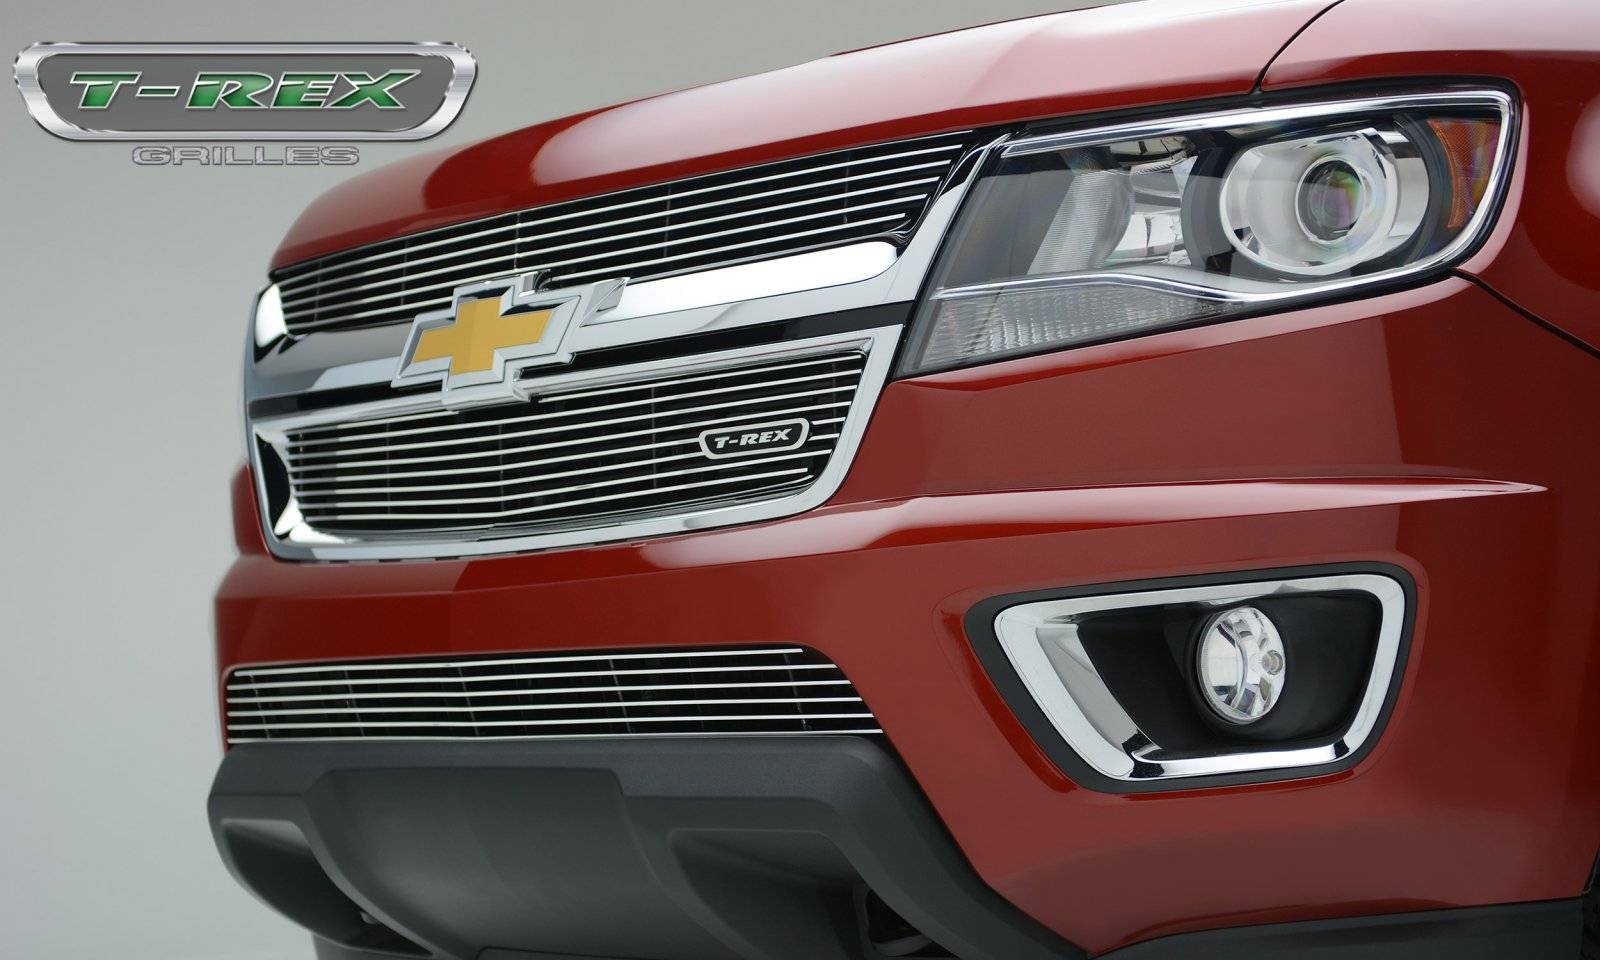 Chevrolet Colorado - Billet Series - Main Grille - Overlay with Polished Aluminum Face - Pt # 21267